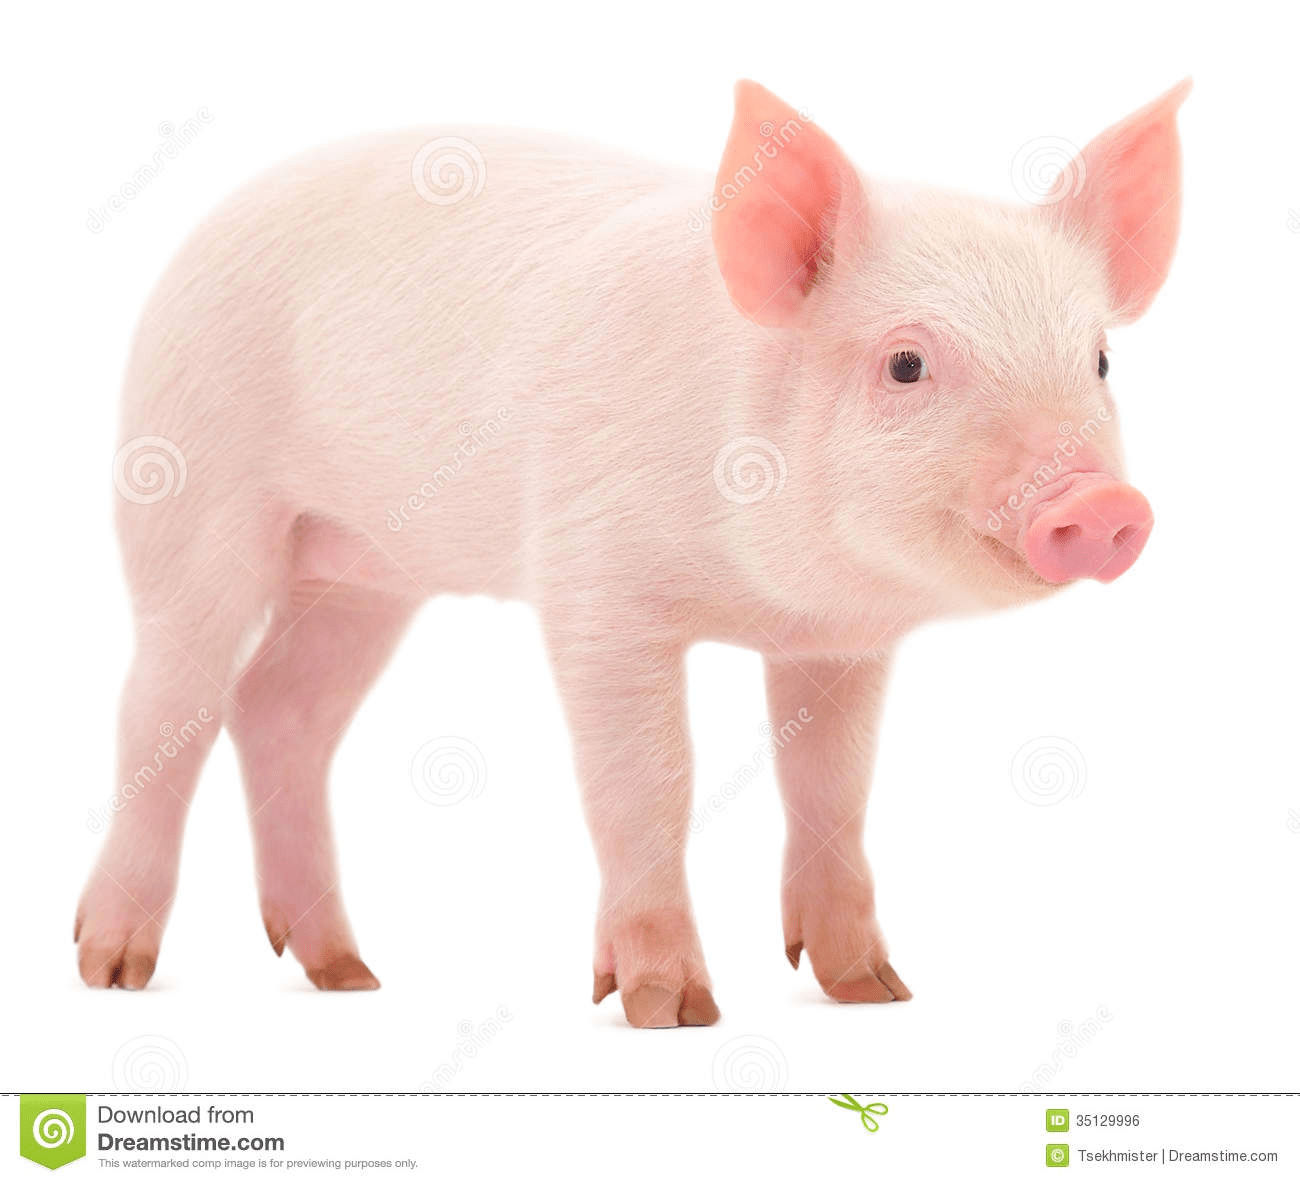 Pig Pictures